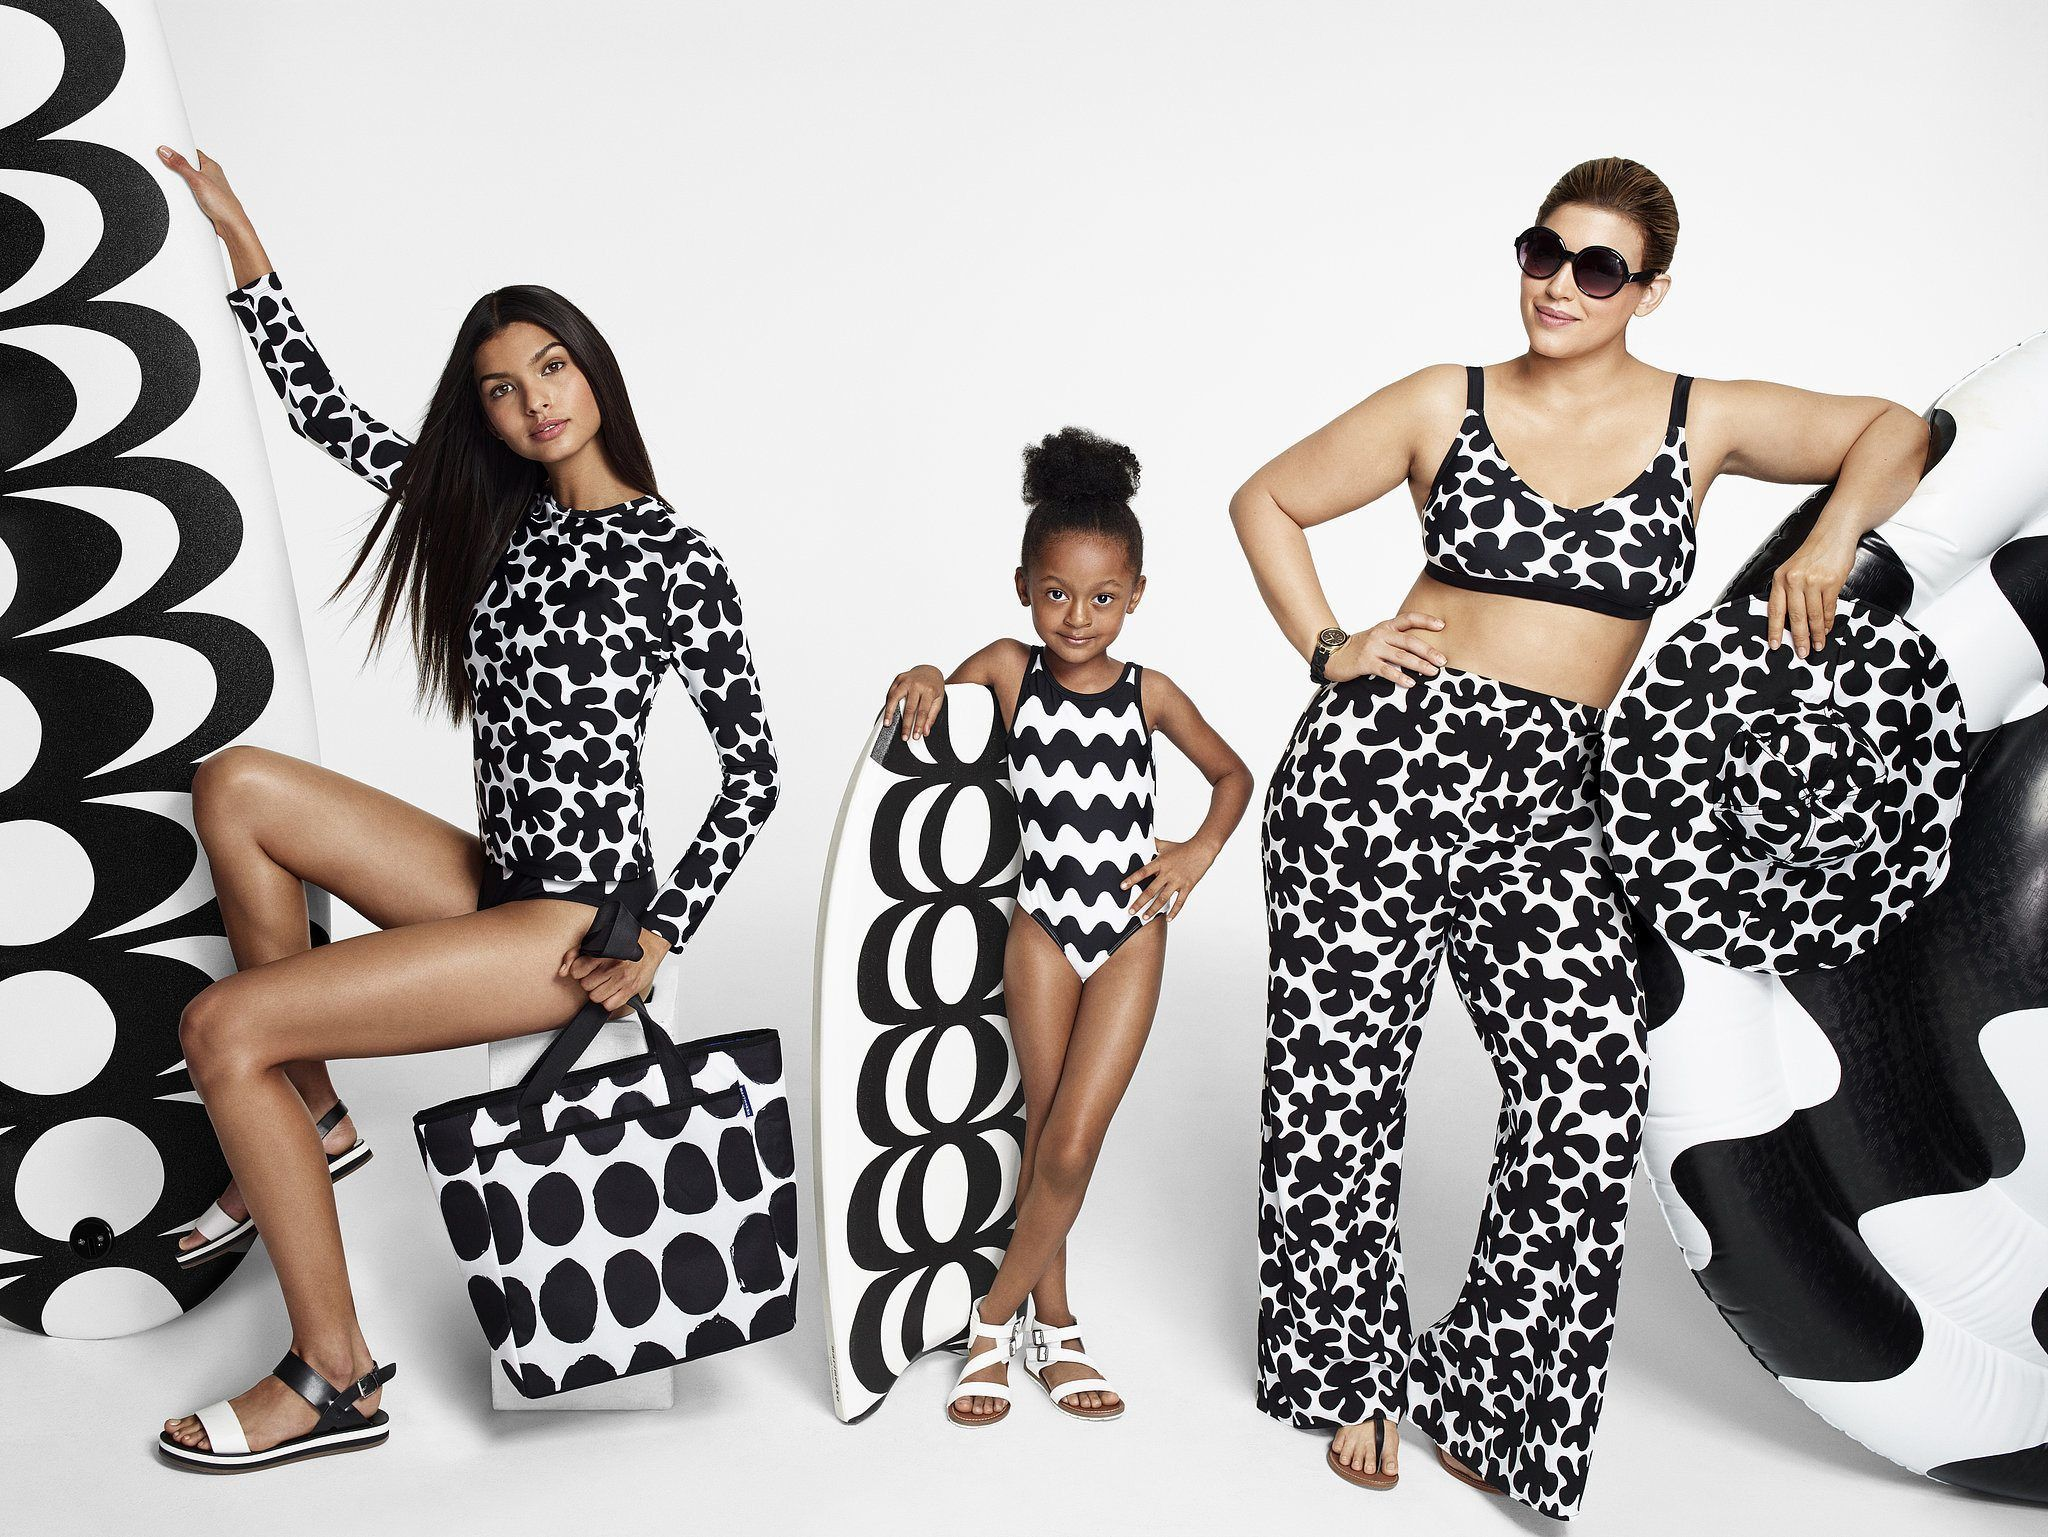 target for marimekko collection